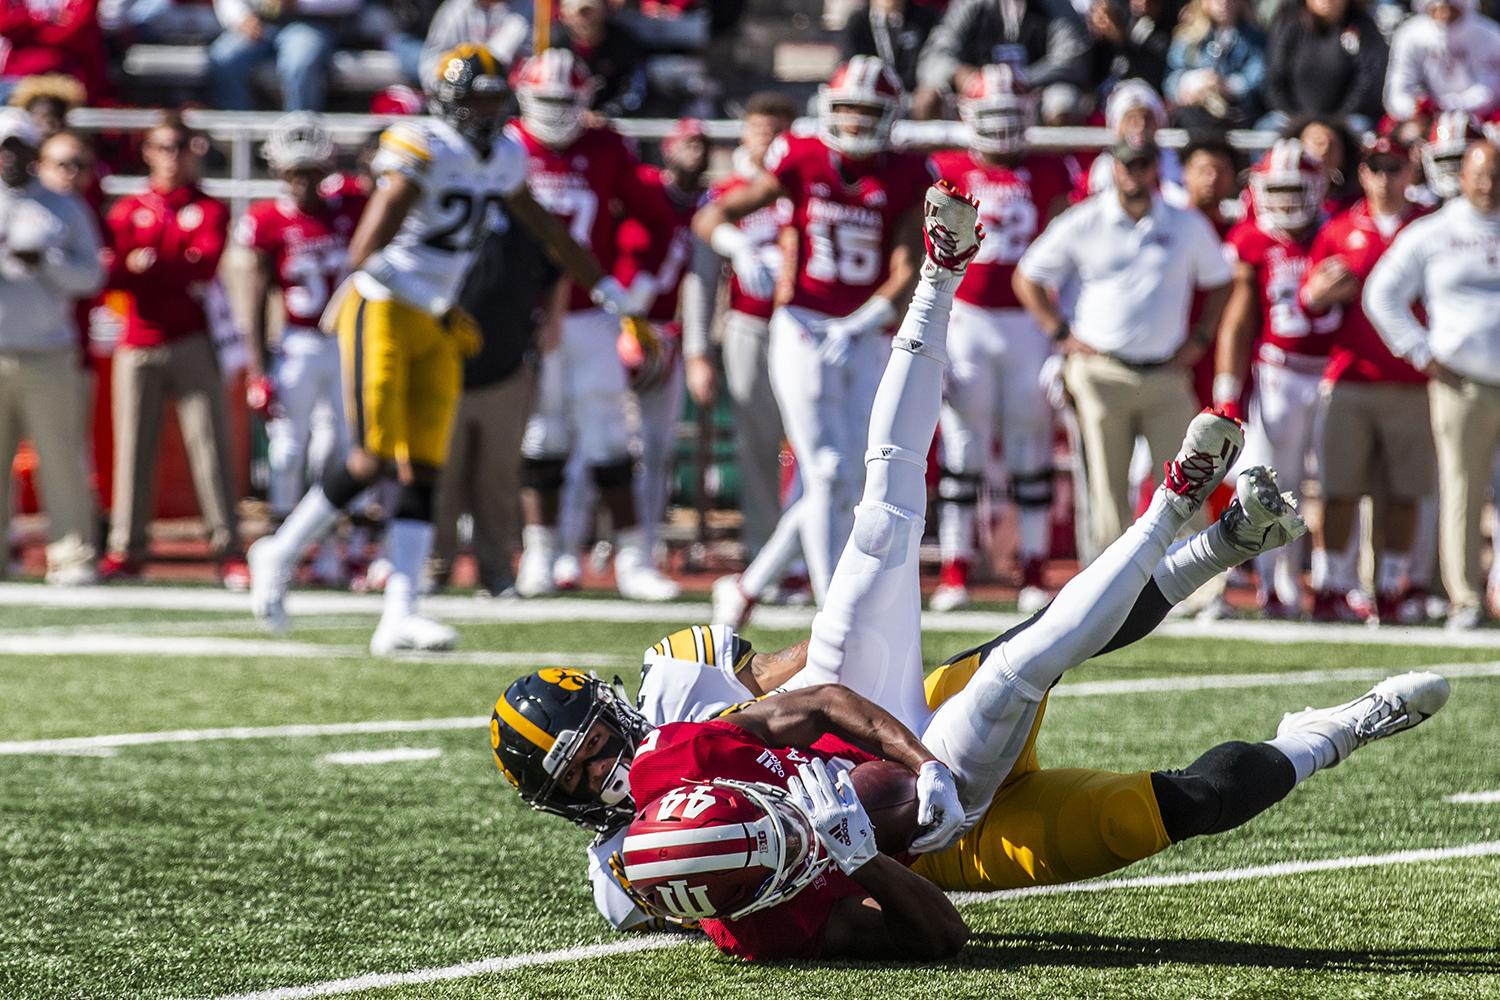 Iowa defensive back Amani Hooker tackles Indiana wide receiver J-Shun Harris during Iowa's game at Indiana at Memorial Stadium in Bloomington on Saturday, October 13, 2018. The Hawkeyes beat the Hoosiers 42-16.